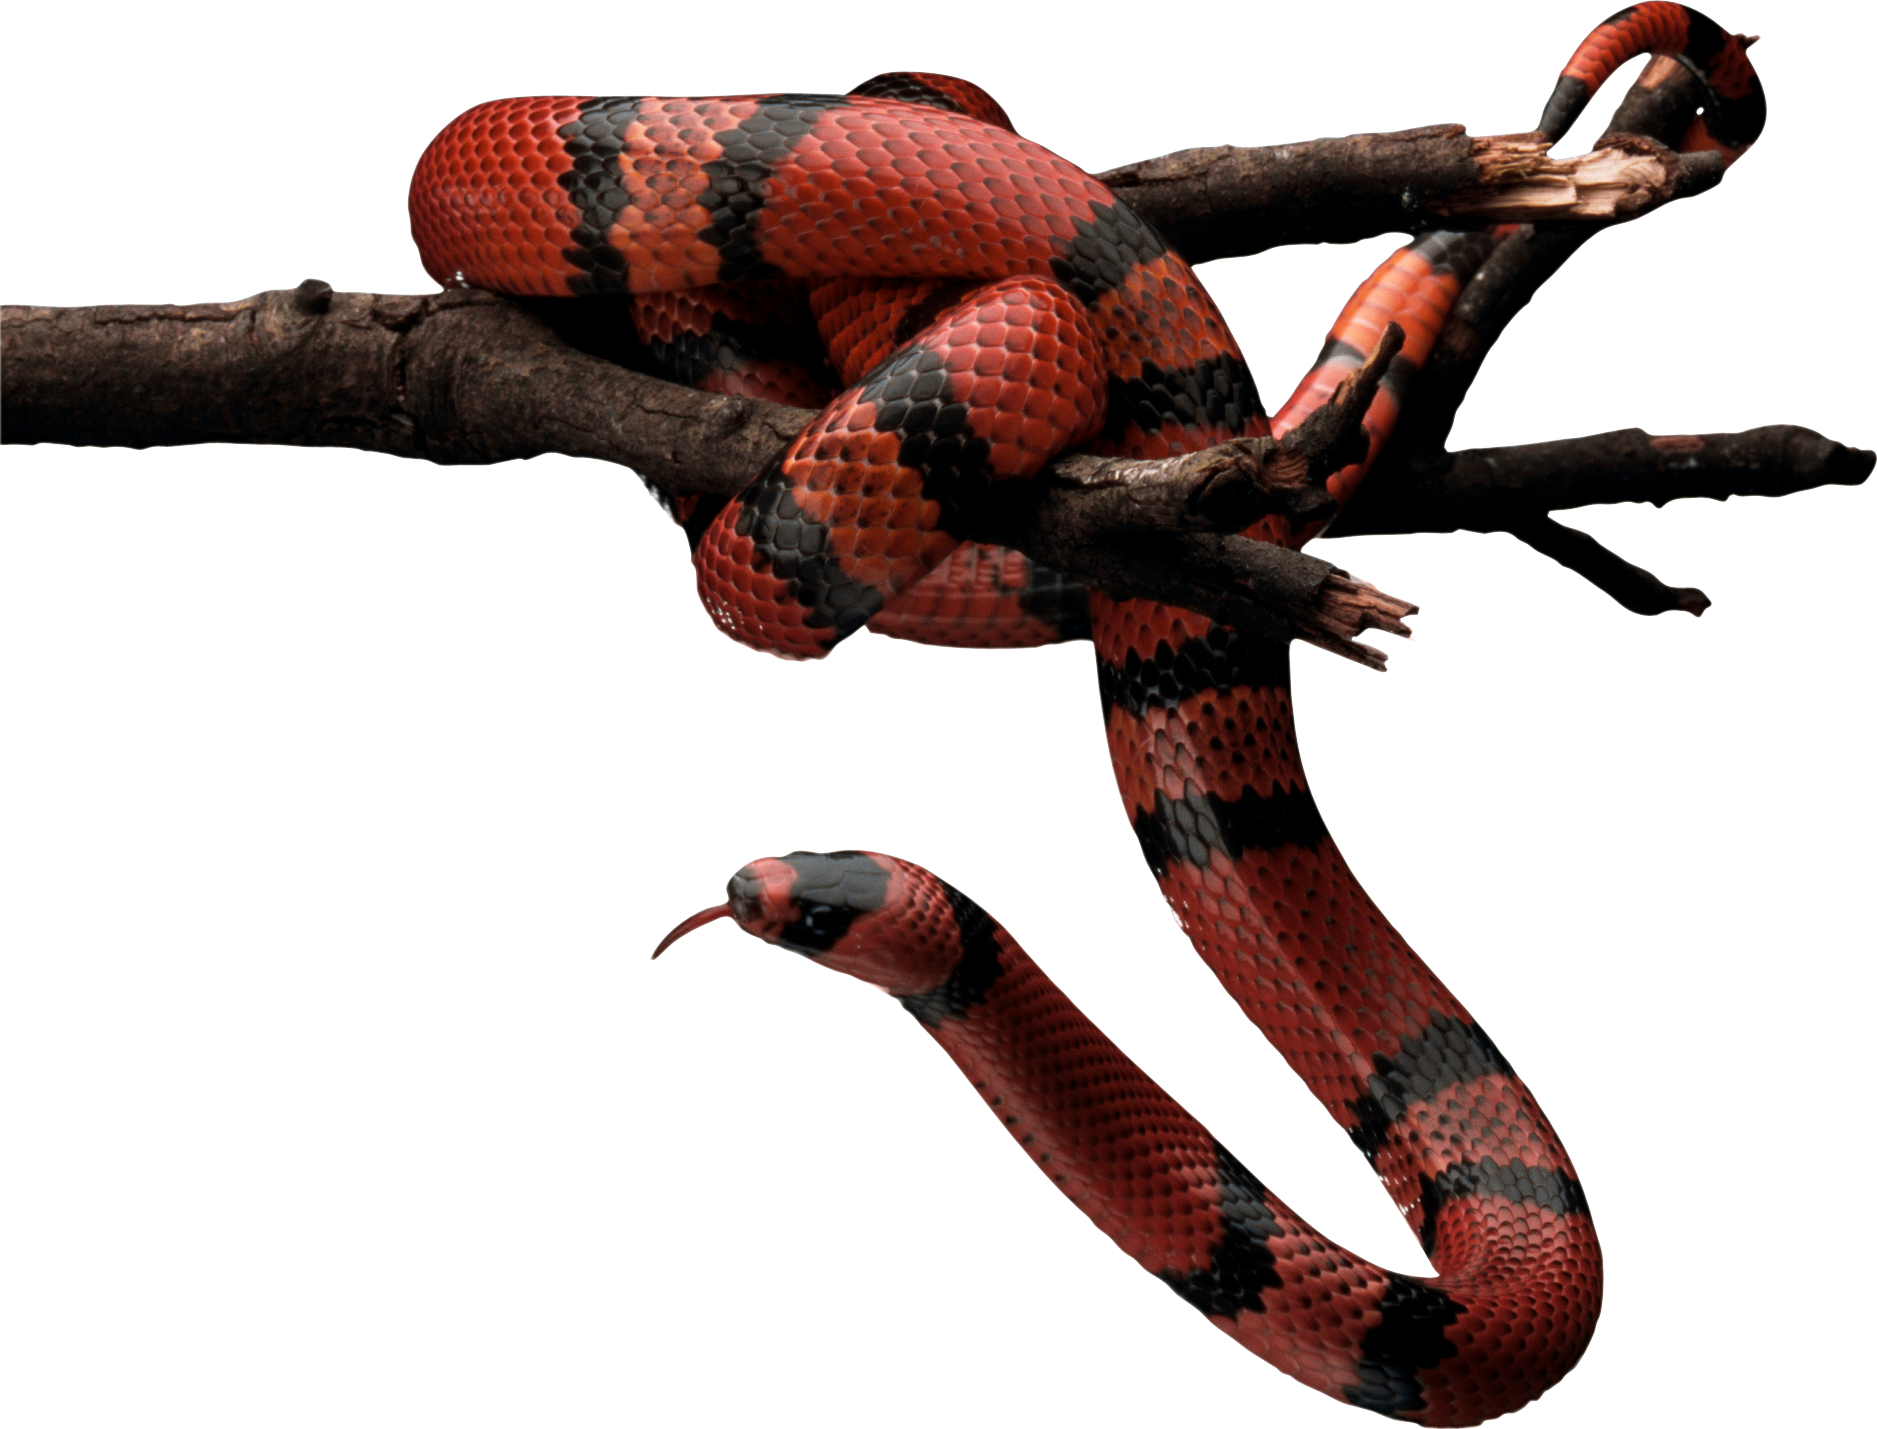 Snake cliparts free download. Cobra clipart realistic